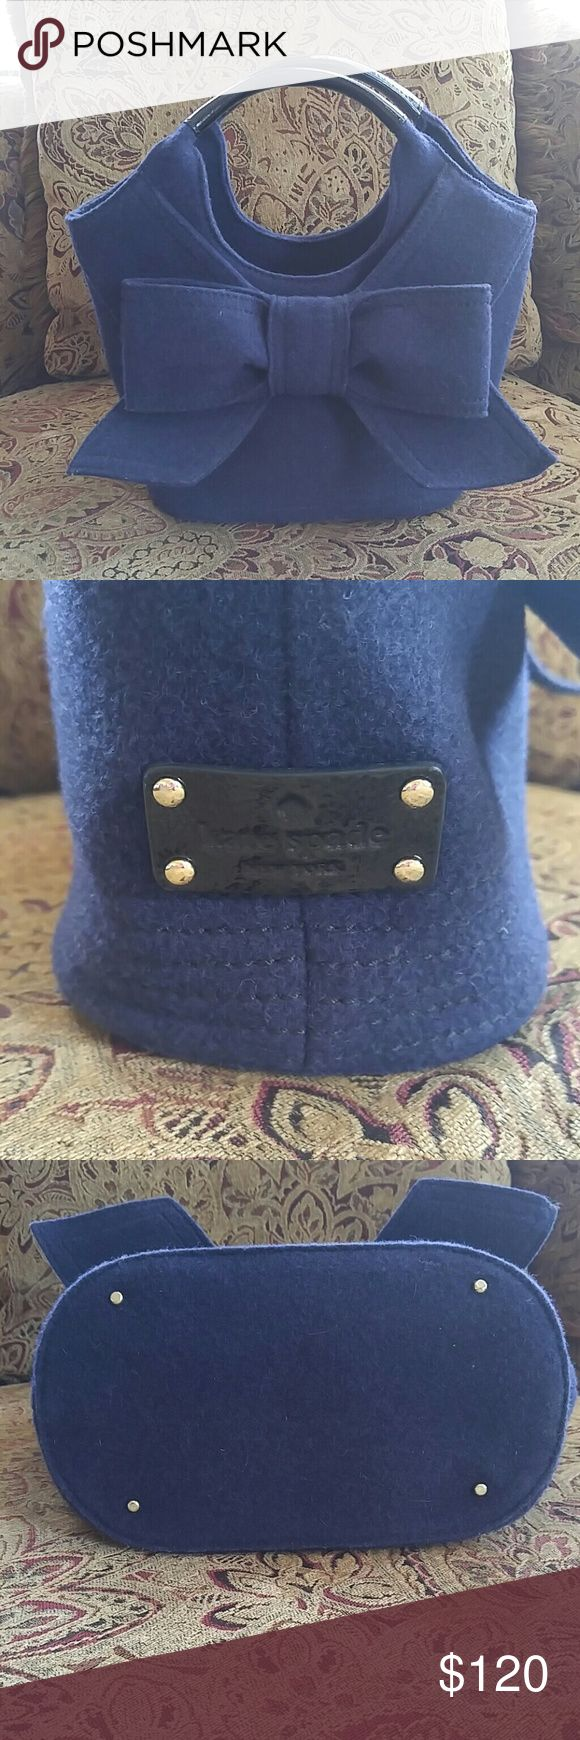 Kate Spate Handbag Wool handbag with patent handles.  Excellent condition.   Navy blue and black. kate spade Bags Totes